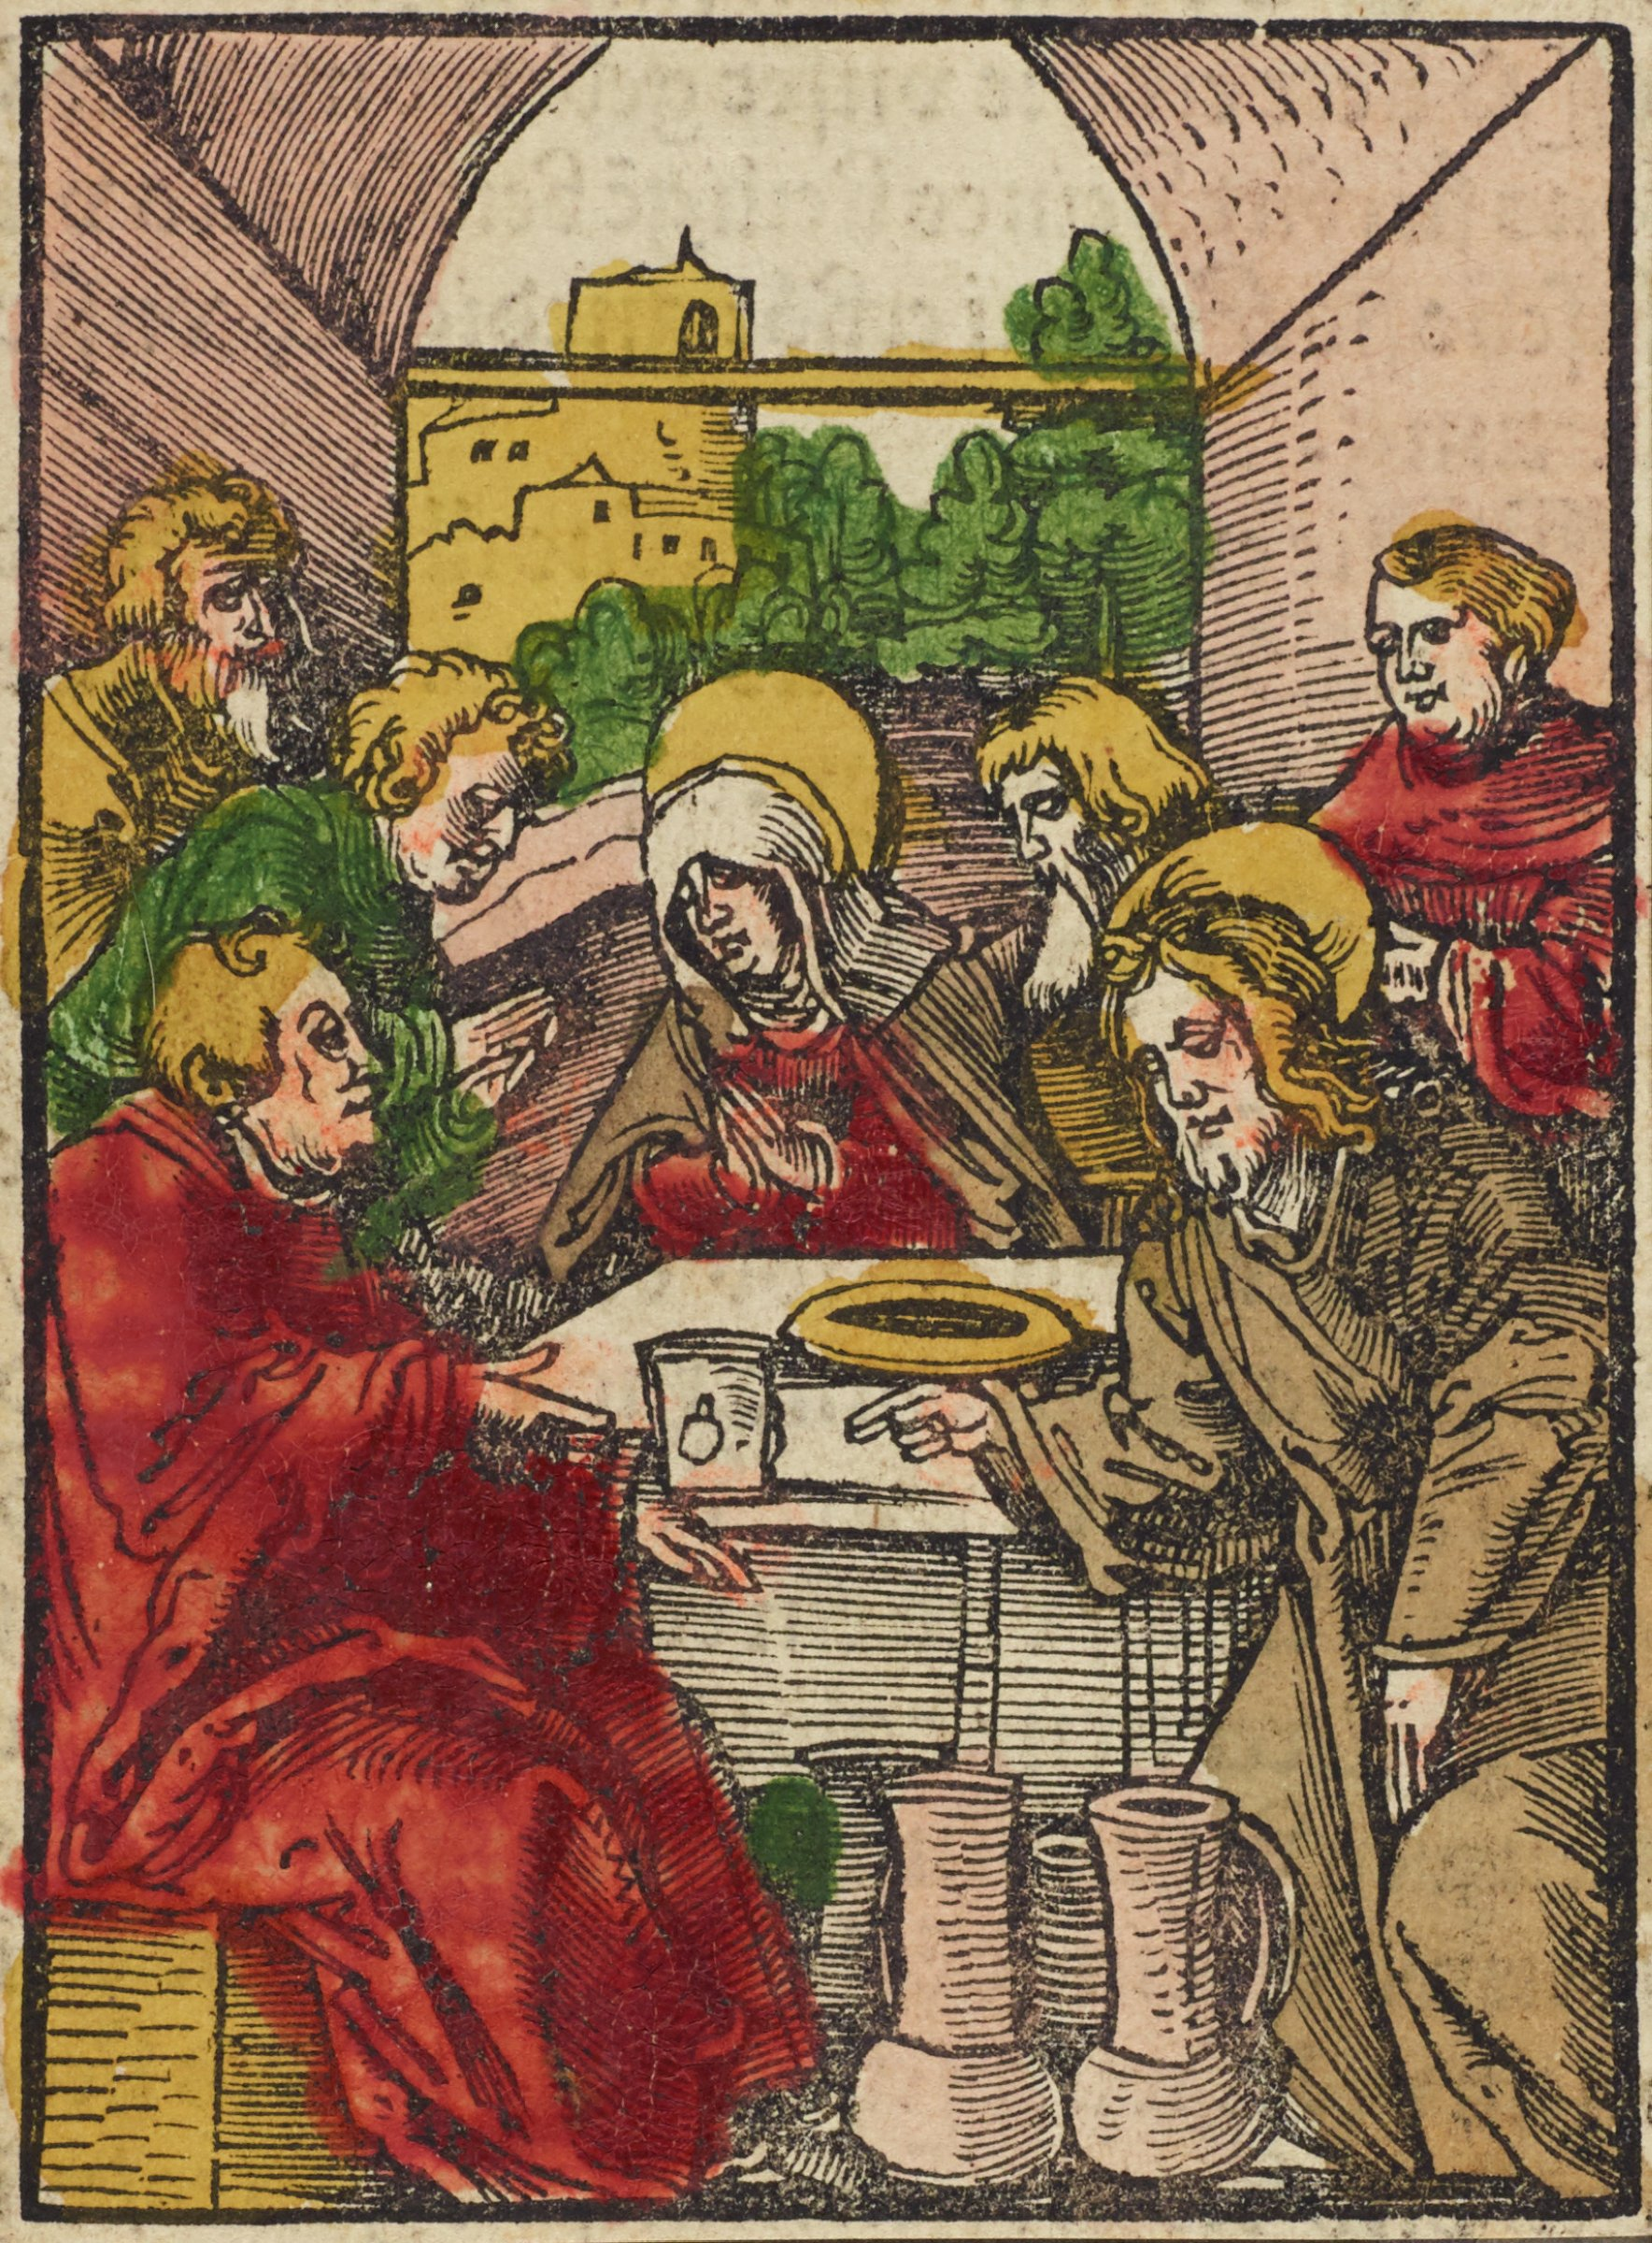 Seven figures are gathered around a table in a small, vaulted room that is open in the back with a vista onto a cityscape. A woman, Mary, sits in the middle behind the table. A man in a red robe is sitting in the left foreground. Jesus is in the lower left with his proper right hand gesturing towards multiple jugs before him with a blessing gesture. The image is colored with yellow, green, red, and brown.The sheet is cut down almost to the edge of the image.